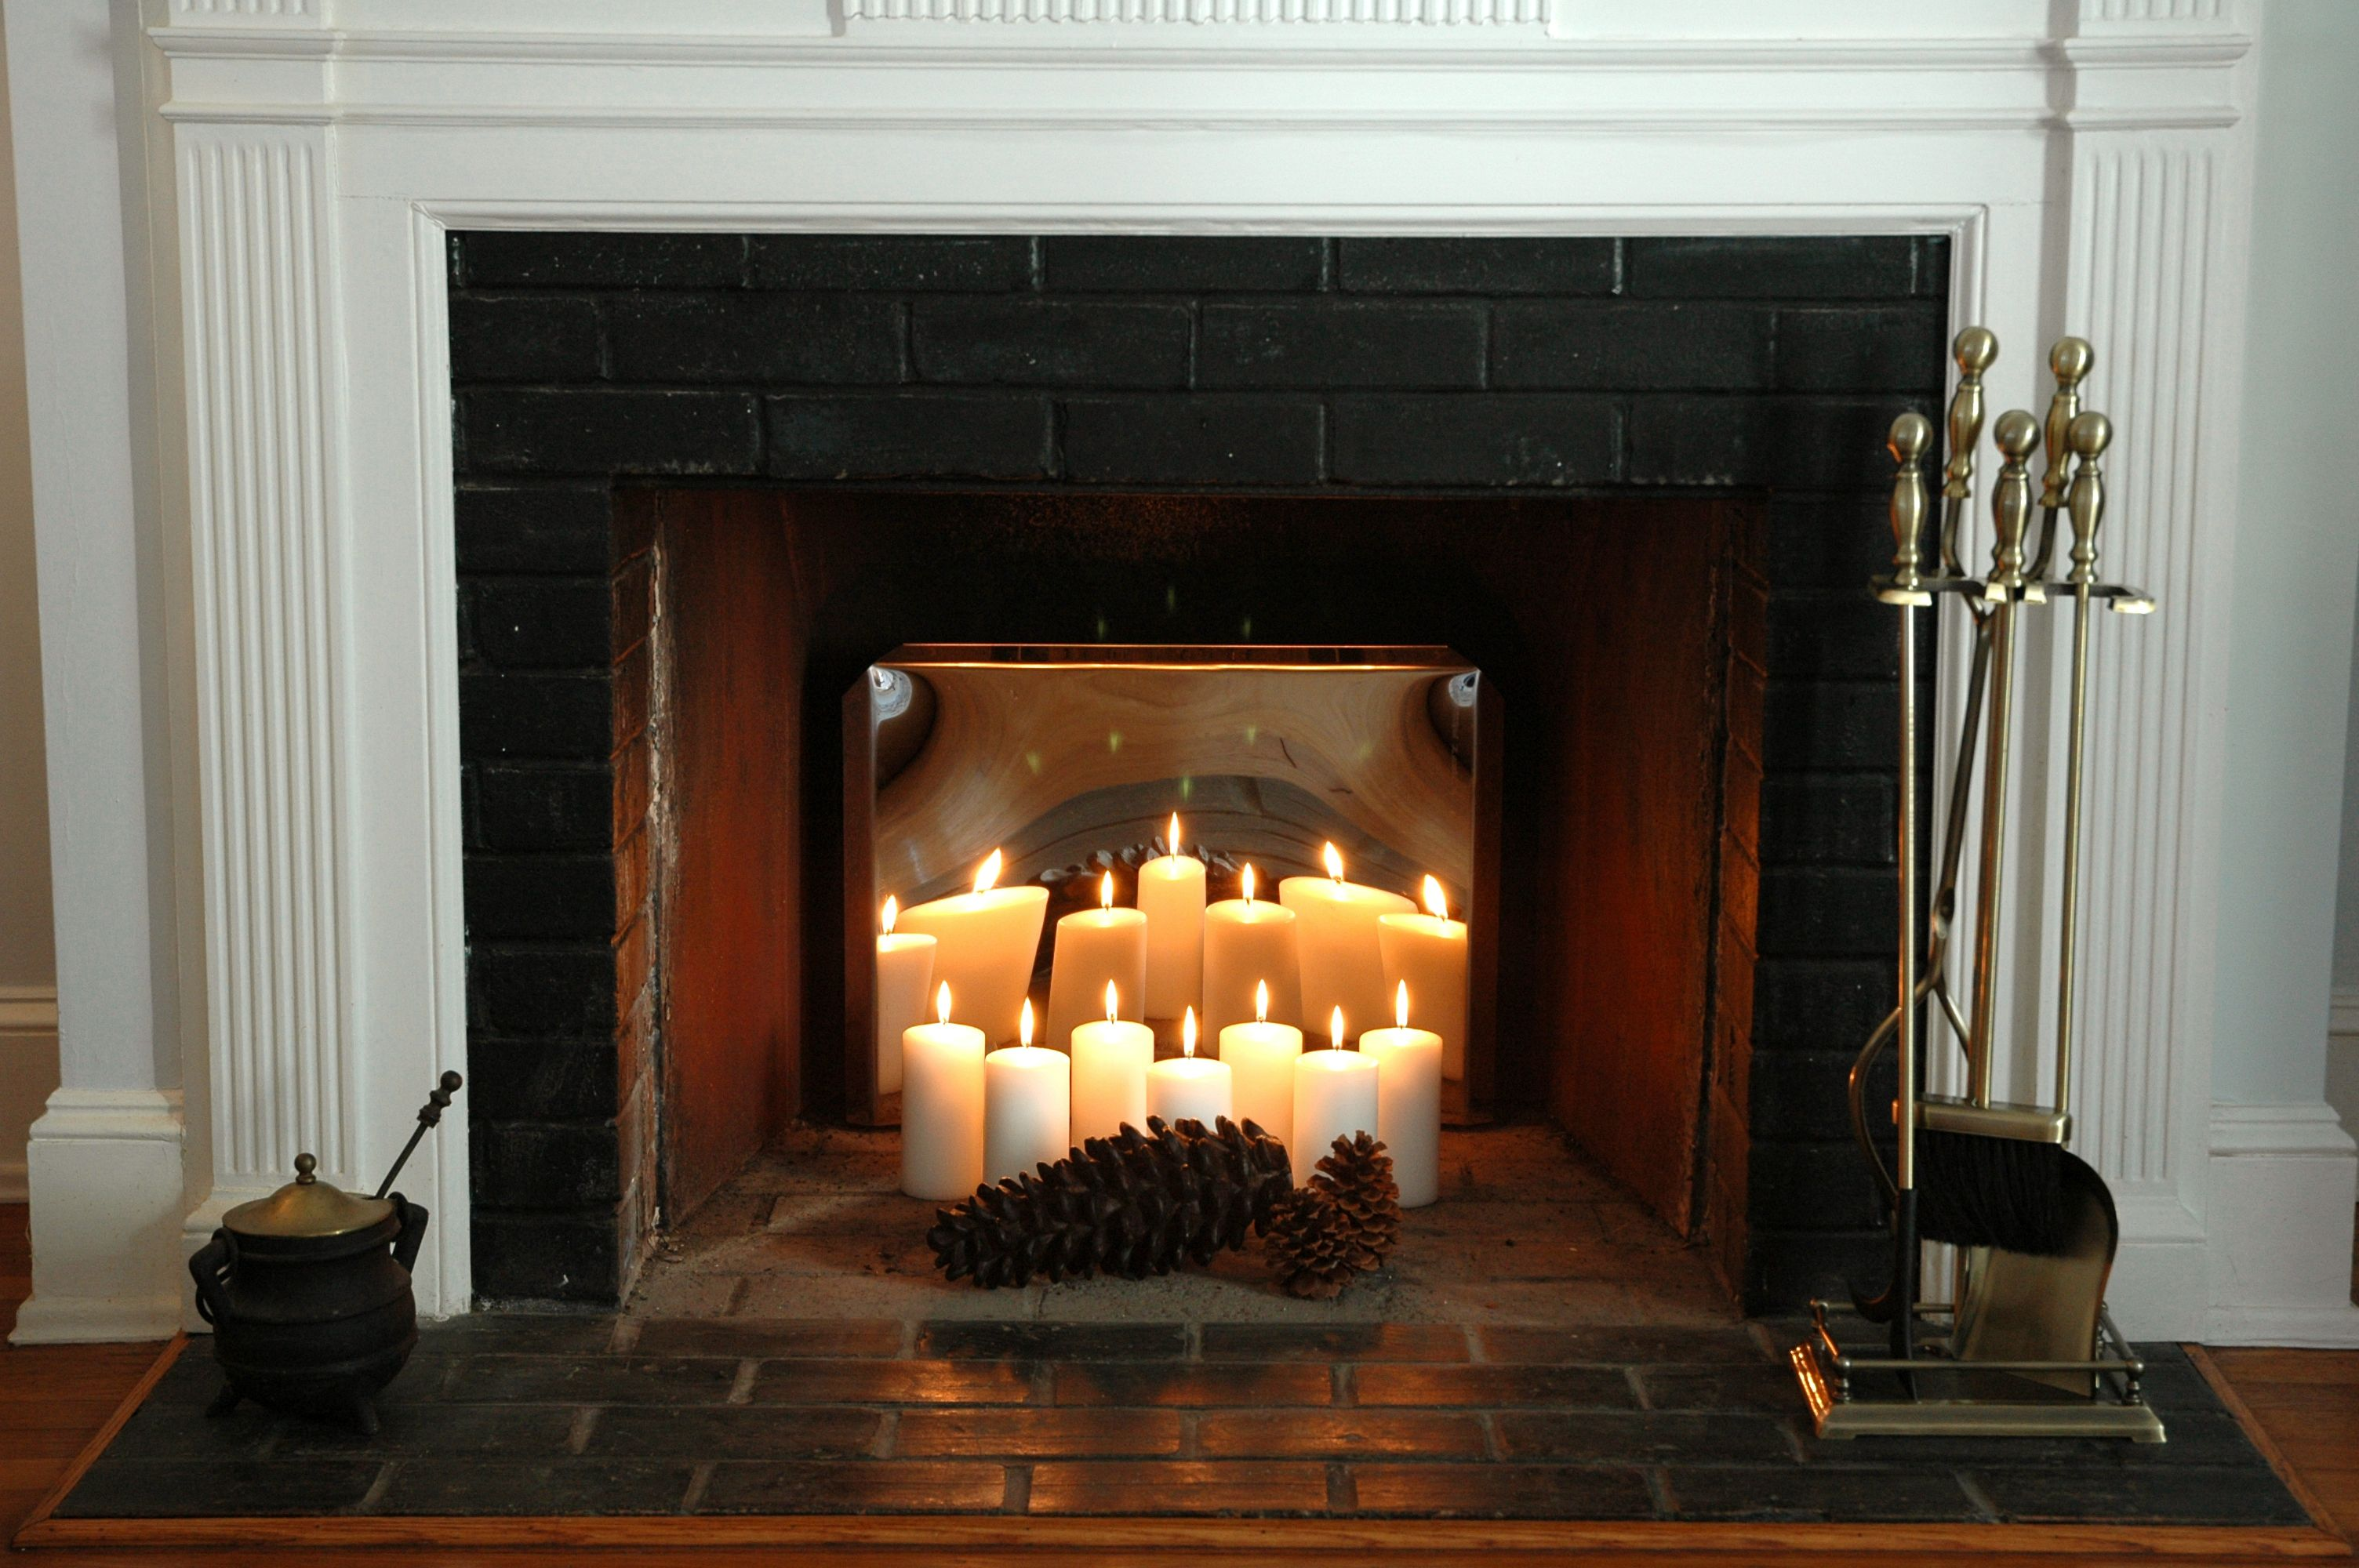 Fireplace Candle Holder For Inside Summer Decorating Ideas Your The Blog At Fireplacemall